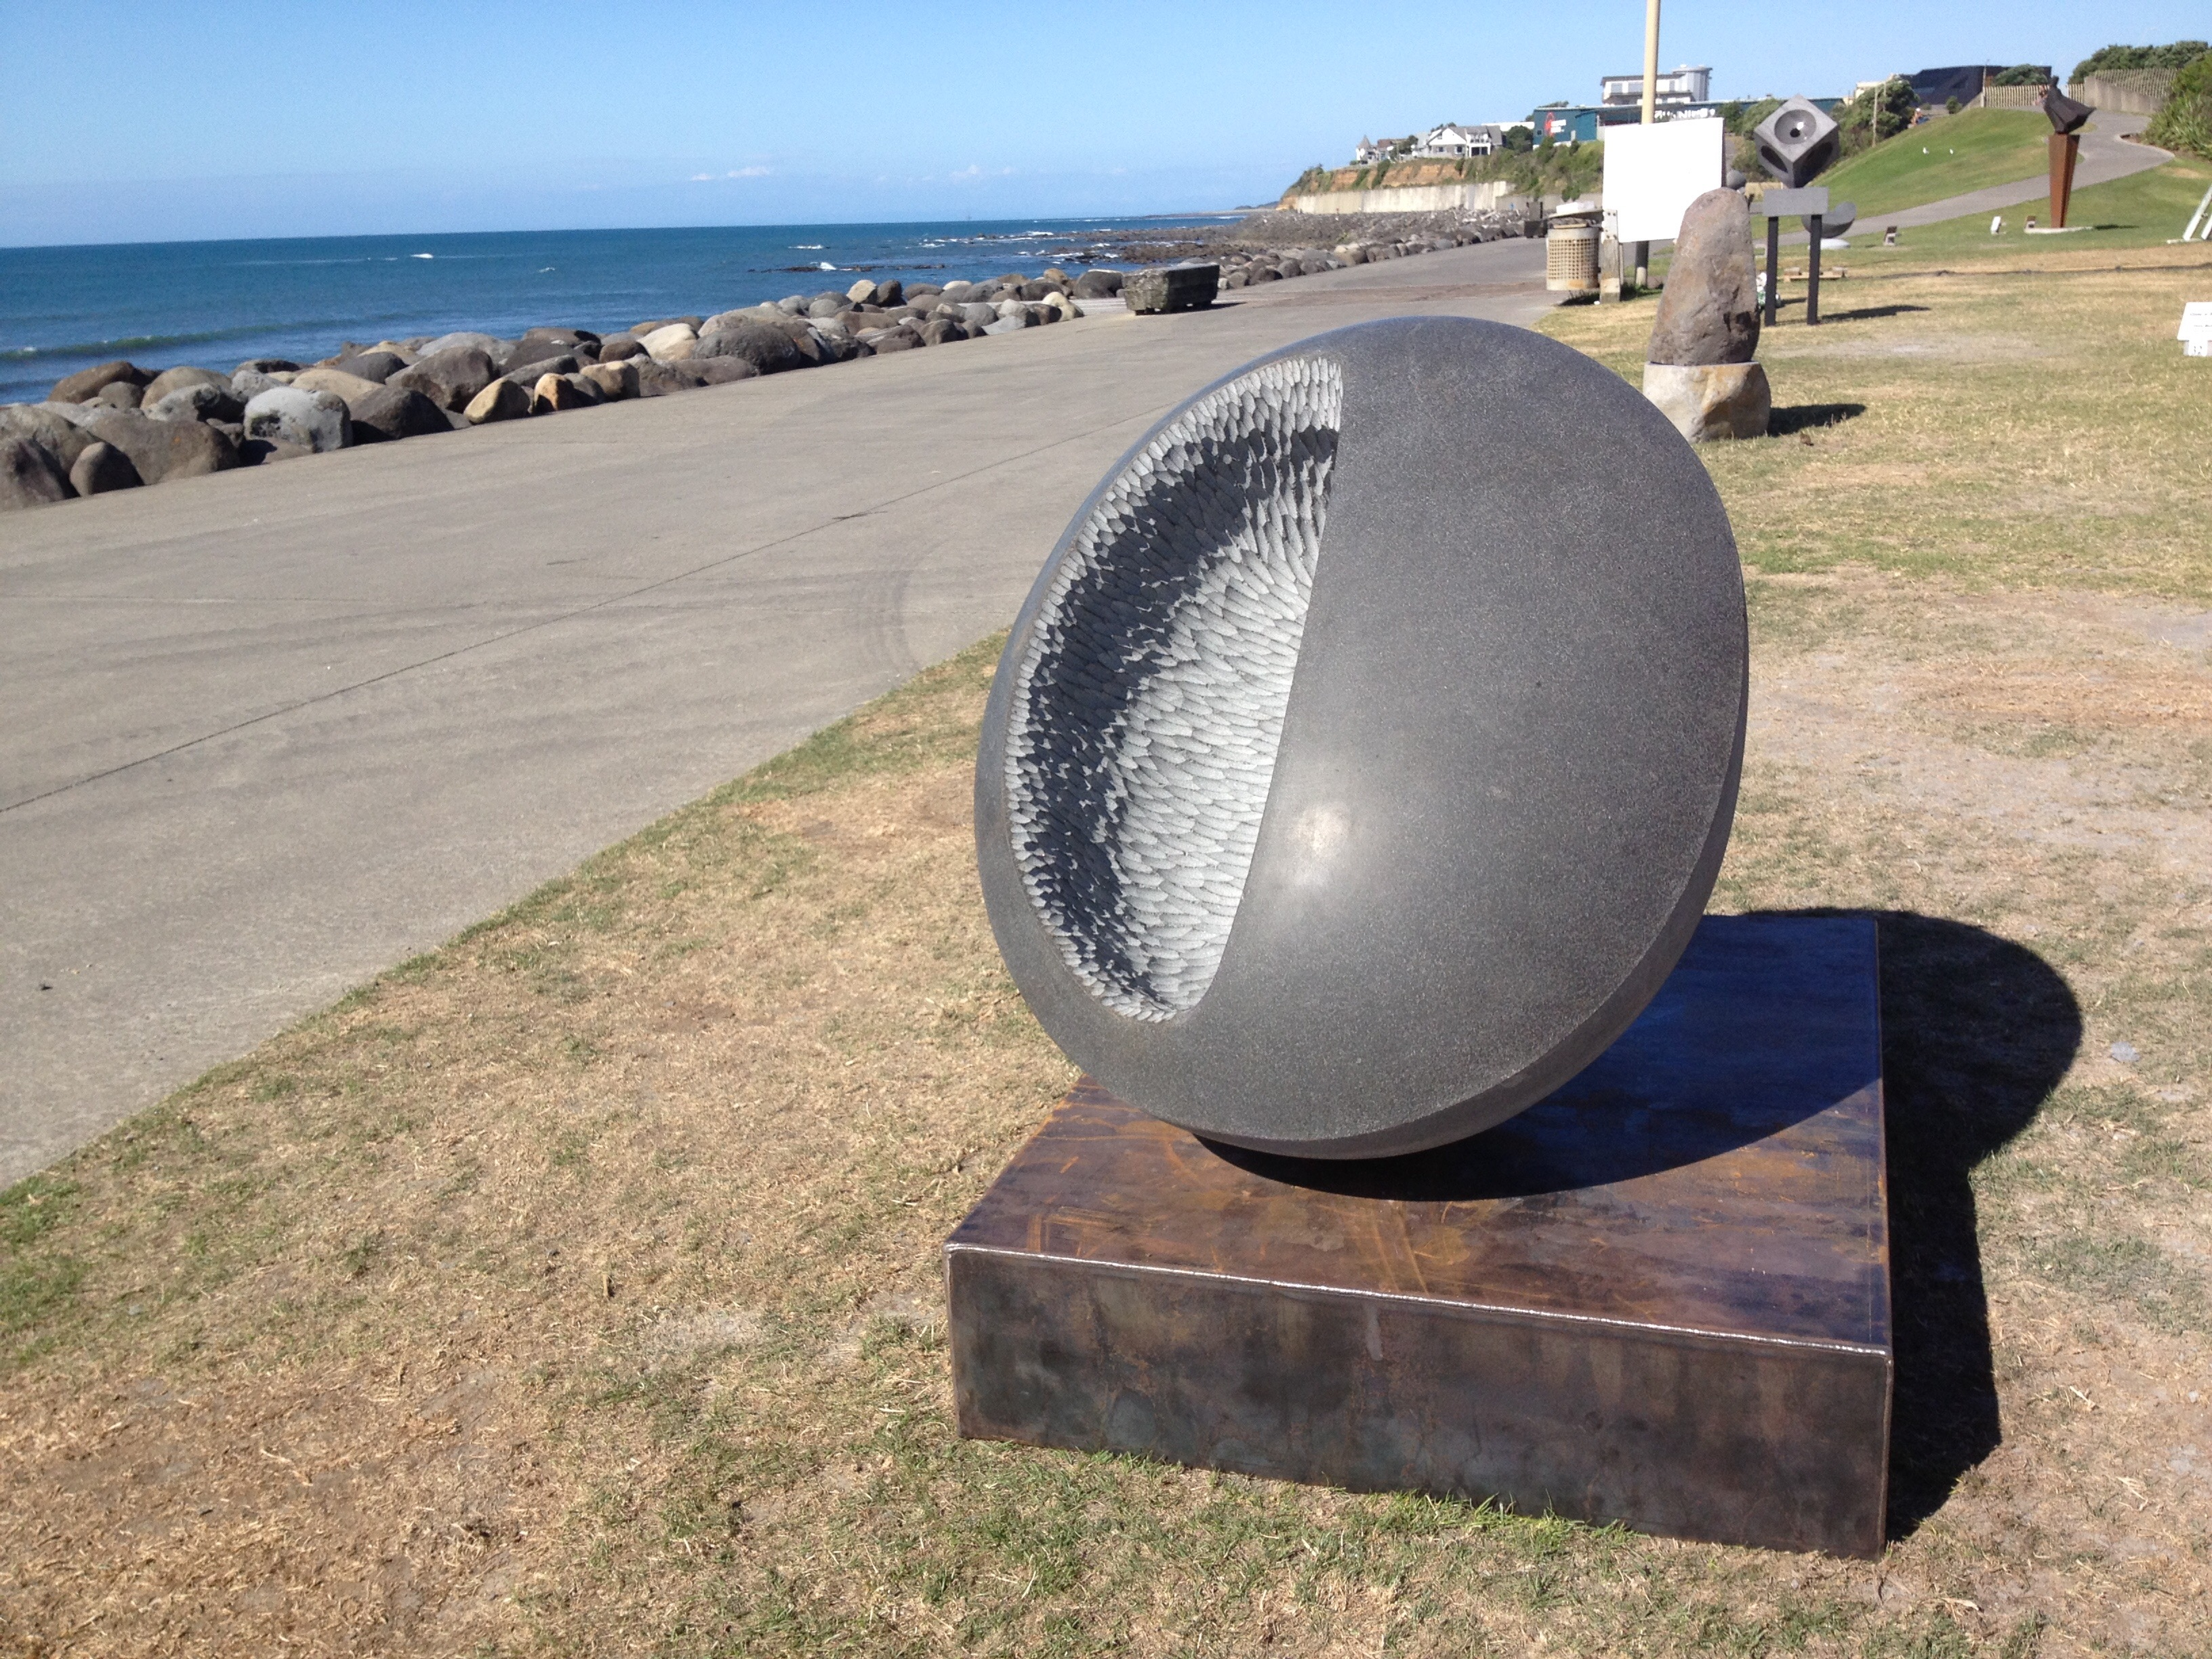 'anoia' - carved at the Te Kupenga stone sculpture symposium in New Plymouth, New Zealand, January 2016.